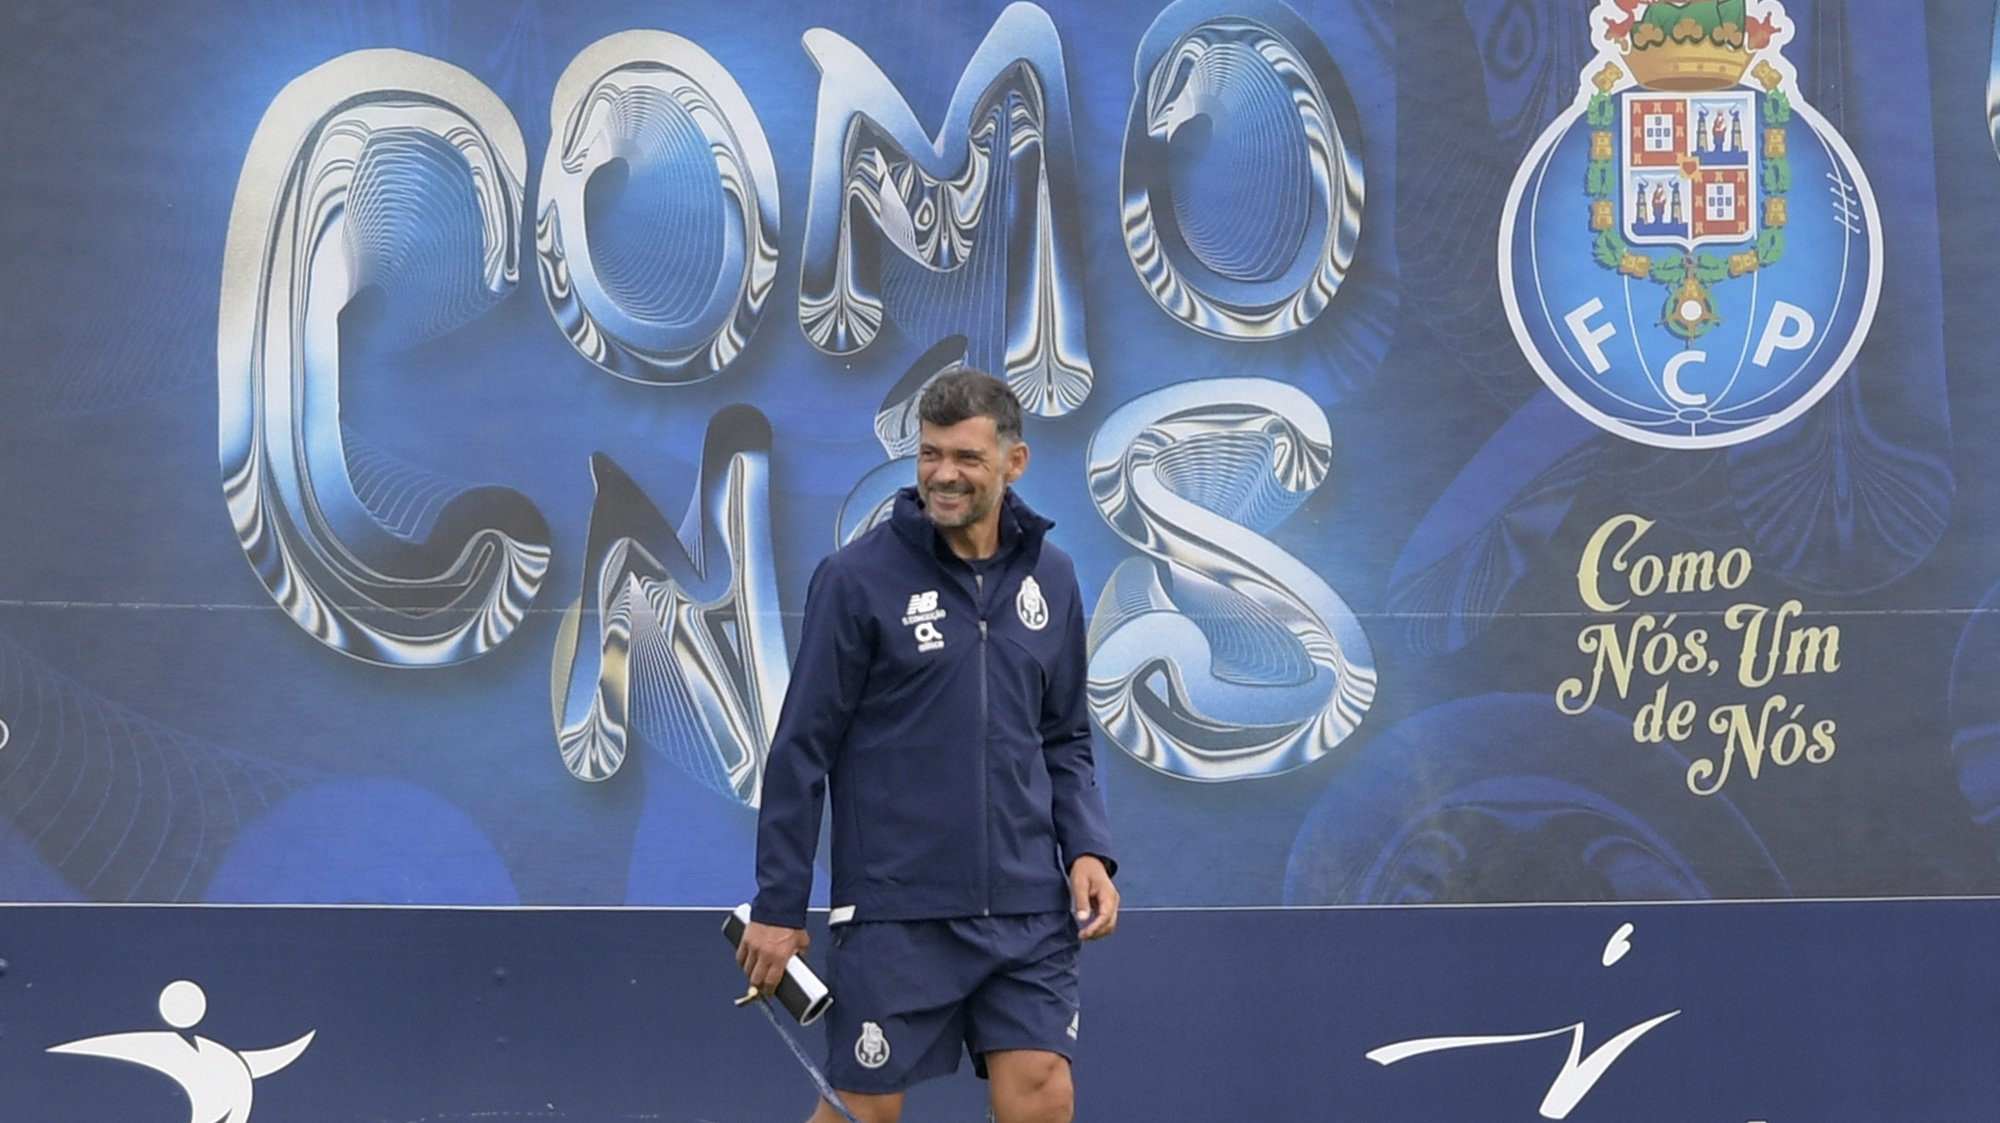 epa09467166 FC Porto's head coach Sergio Conceicao during a training session in Vila Nova de Gaia, Portugal, 14 September 2021. FC Porto will face Atletico Madrid in their UEFA Champions League group stage soccer match in Madrid, Spain on 15 September 2021.  EPA/FERNANDO VELUDO